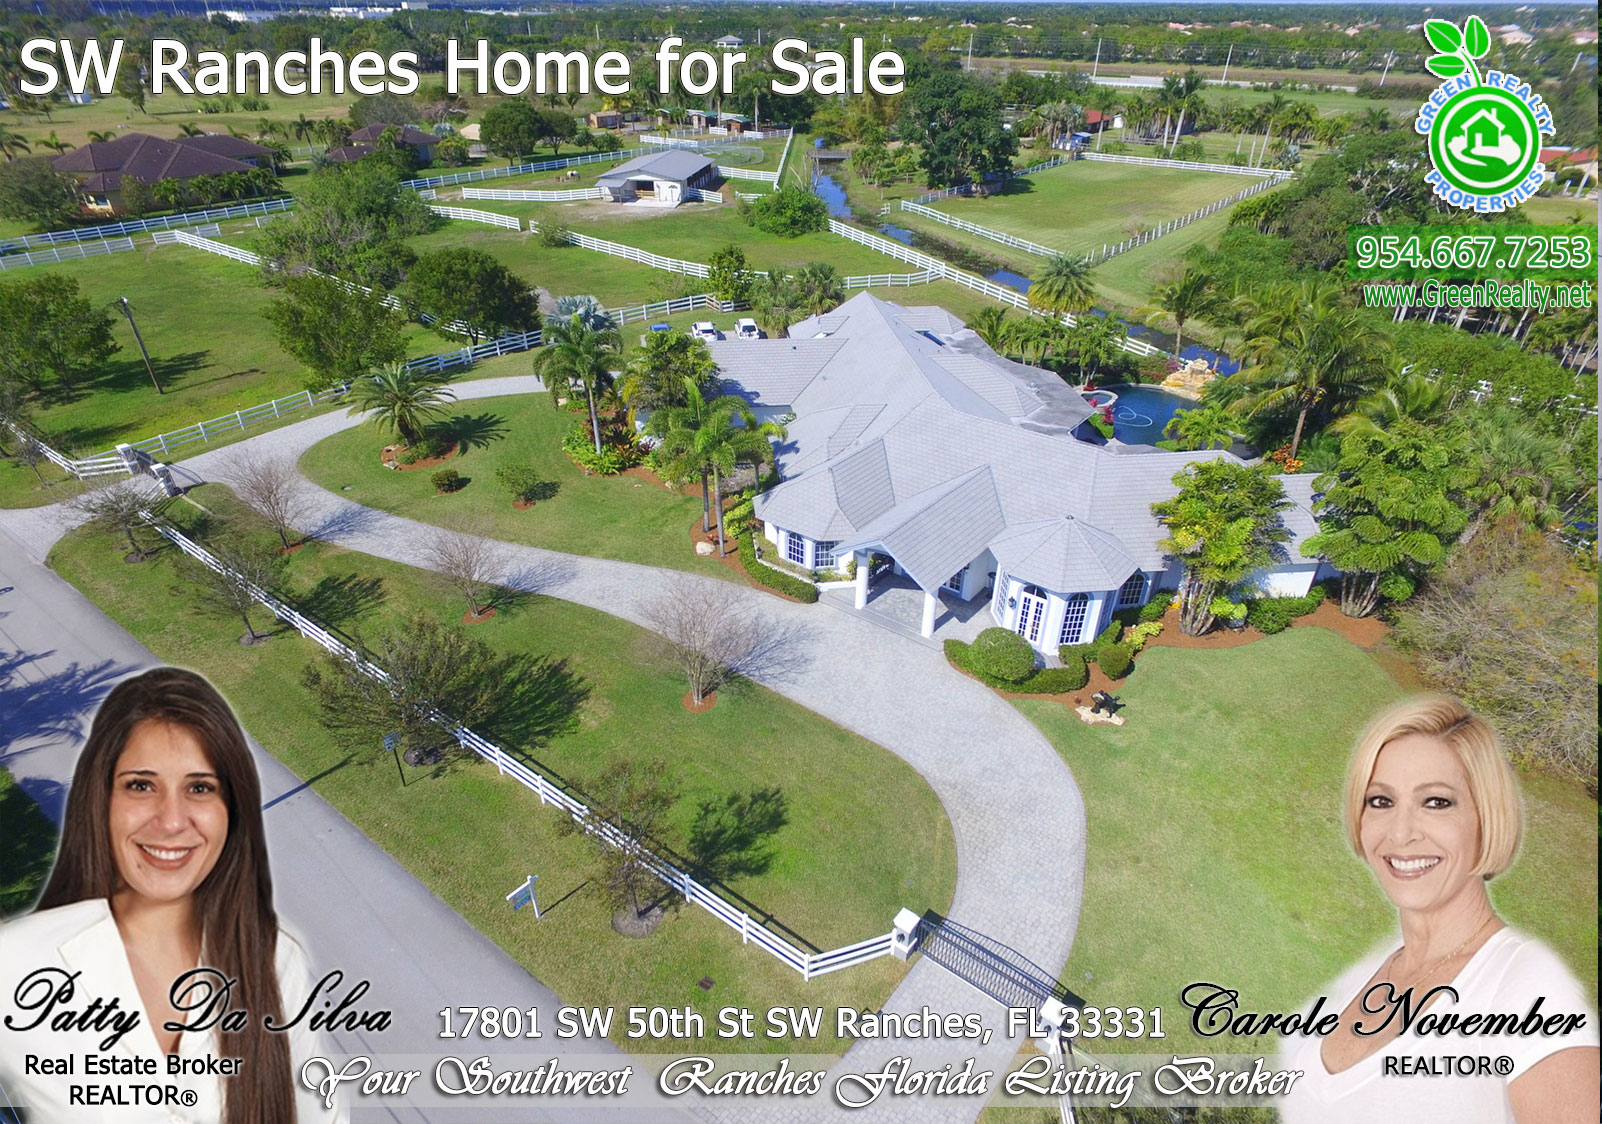 47 Luxury-Homes-in-Southwest-Ranches-FL-(6)